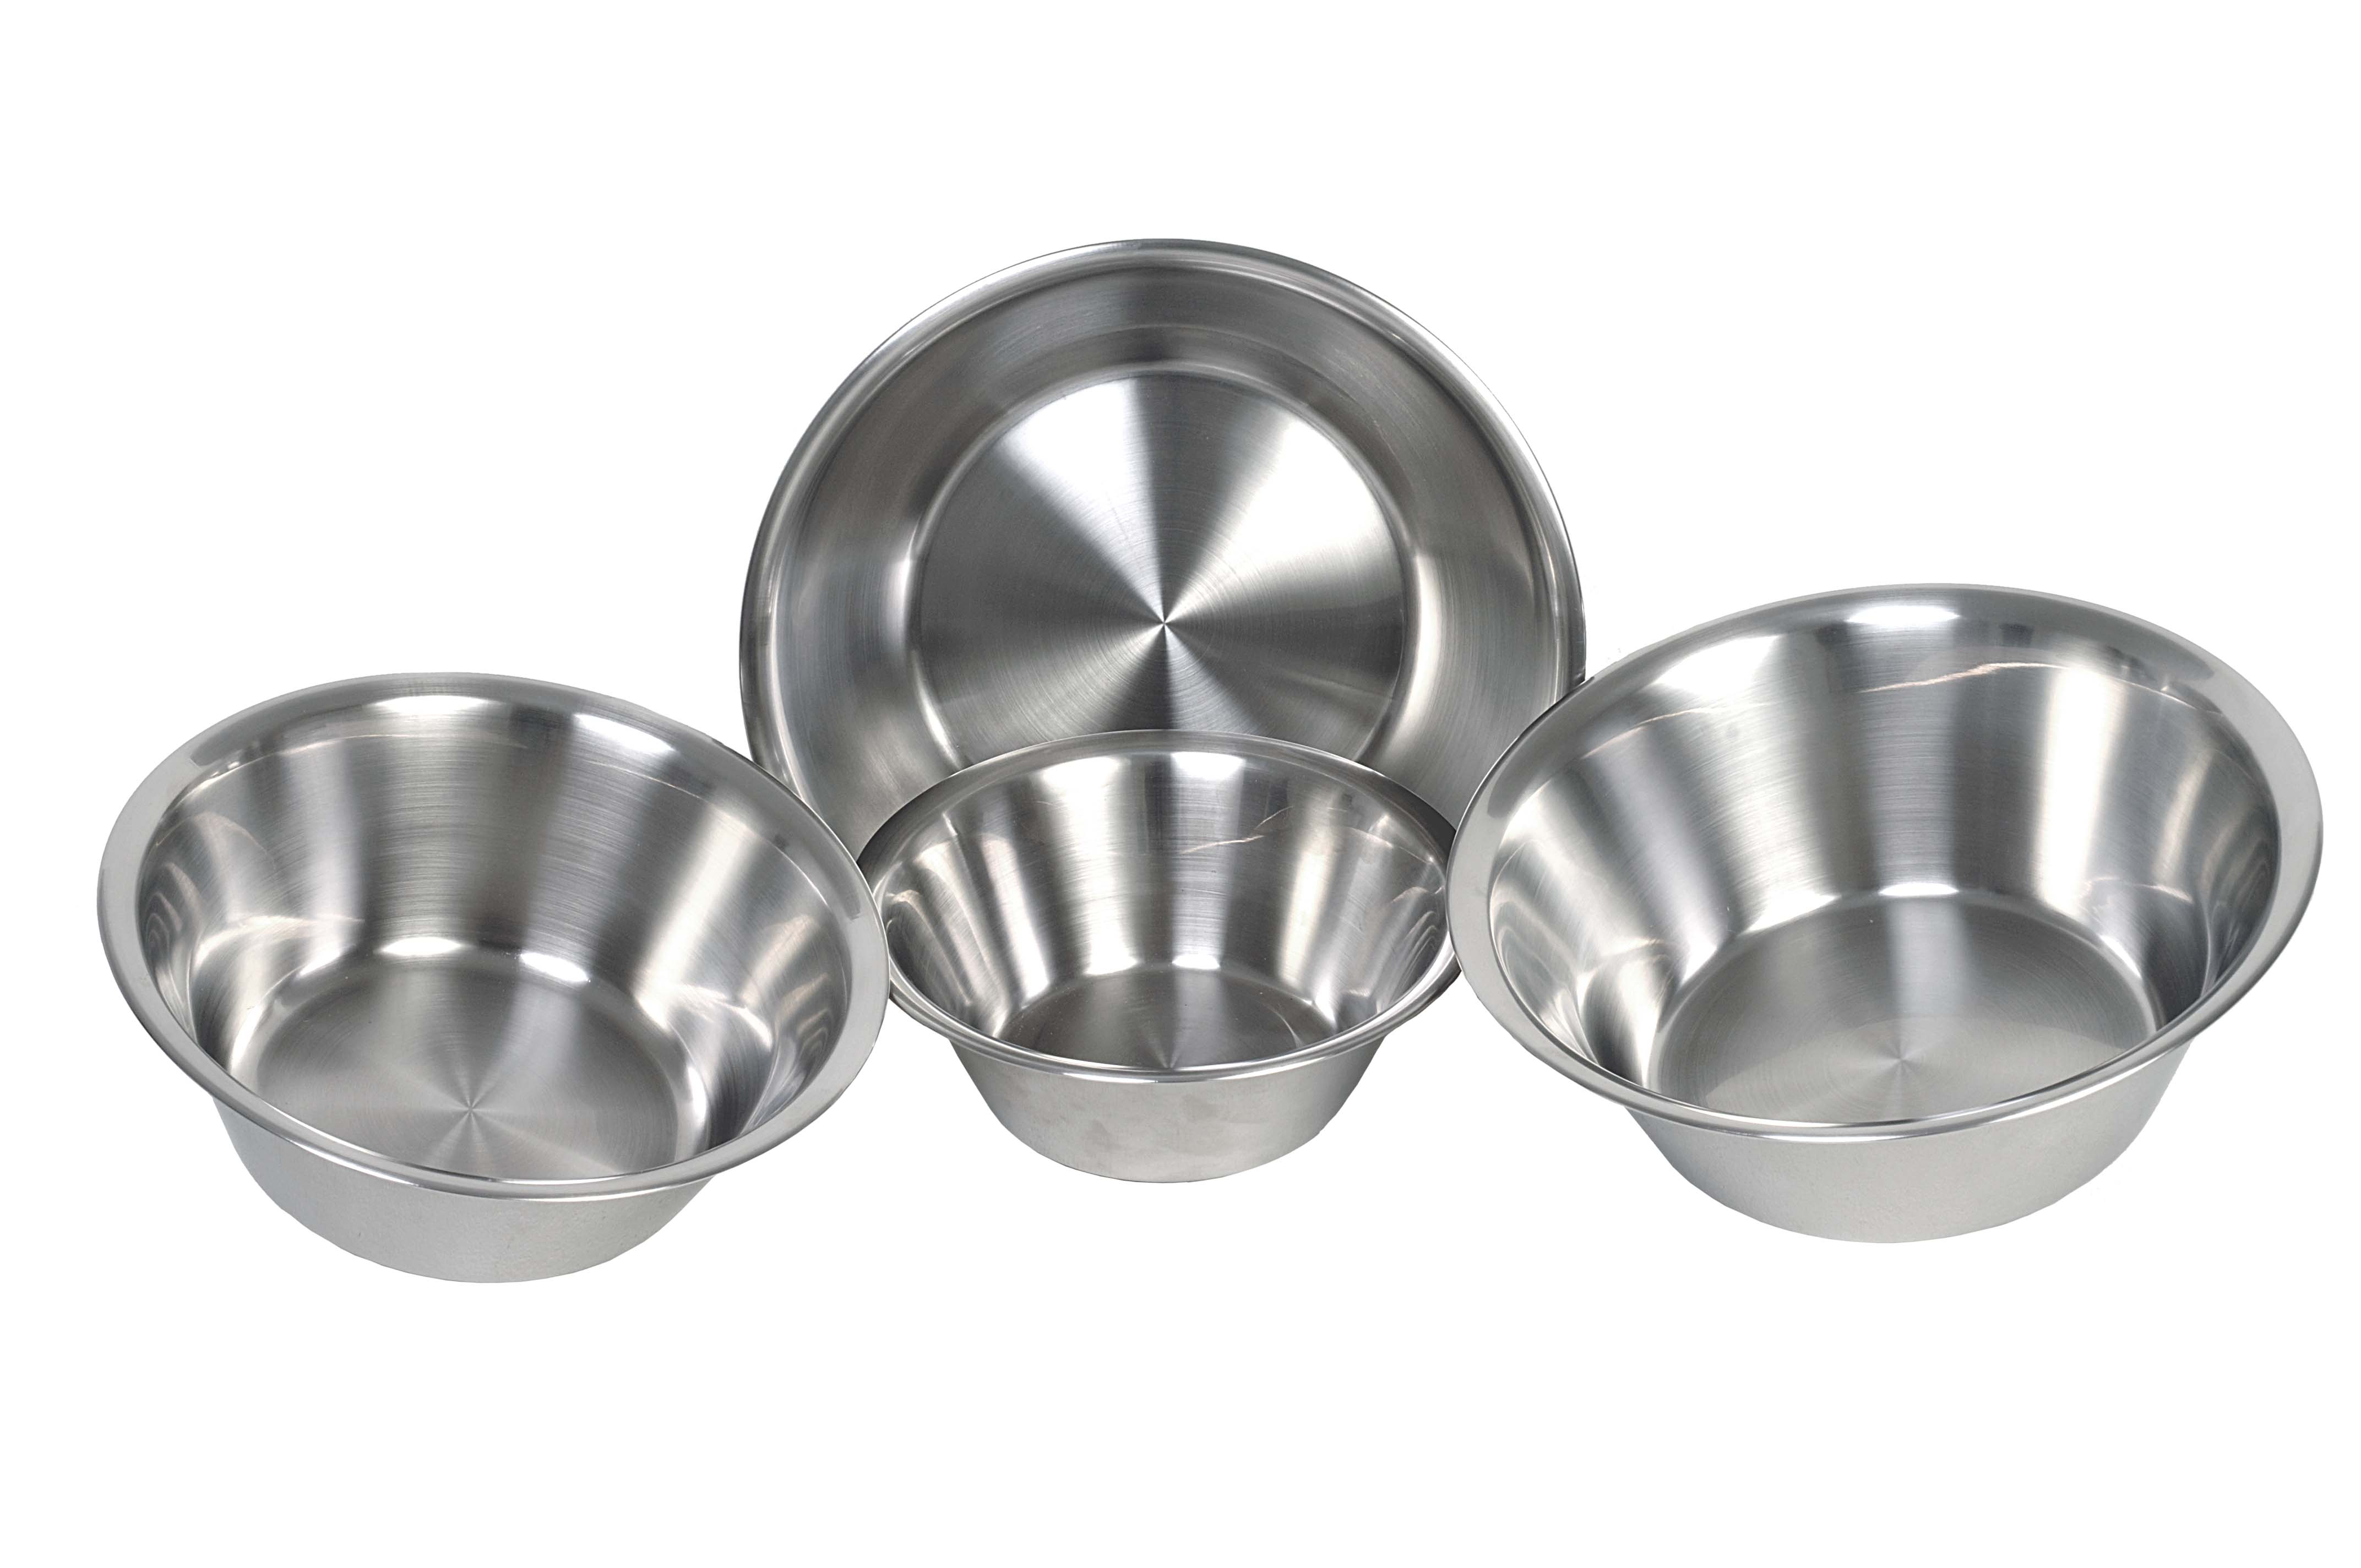 MIXING BOWL TAPERED - MB1 2365 X 80 MM (2.4LT)